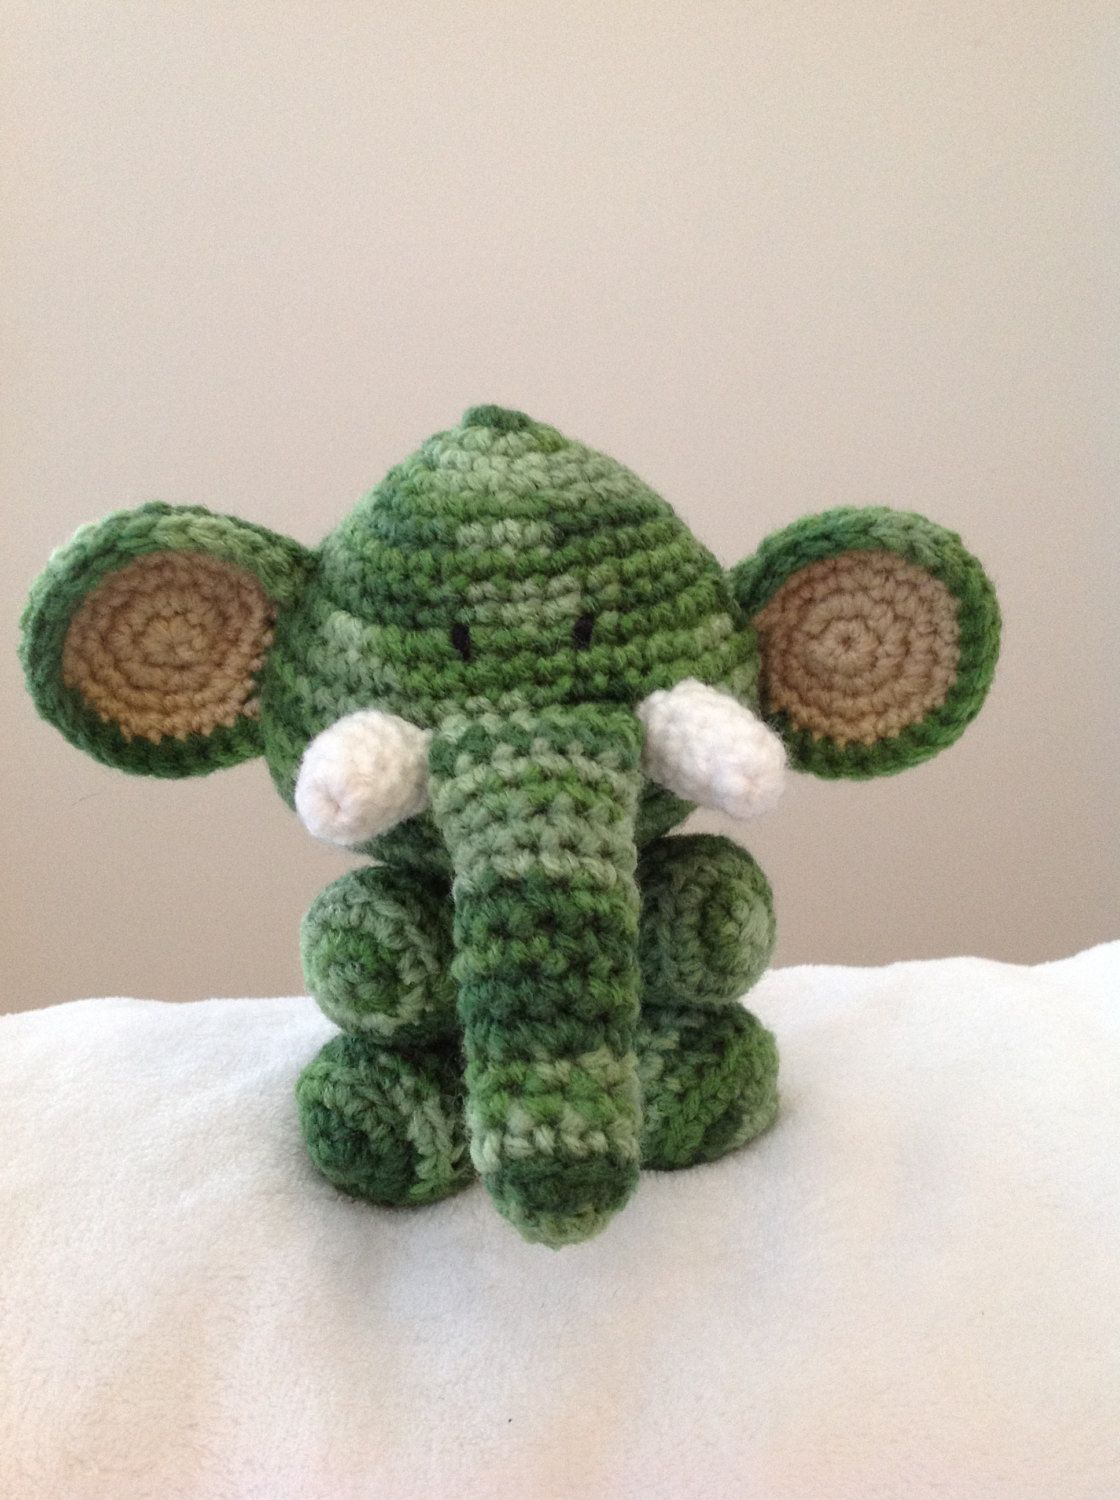 """Crochet Amigurumi Elephant by KrazyKabbage on Etsy"" #Amigurumi #crochet"